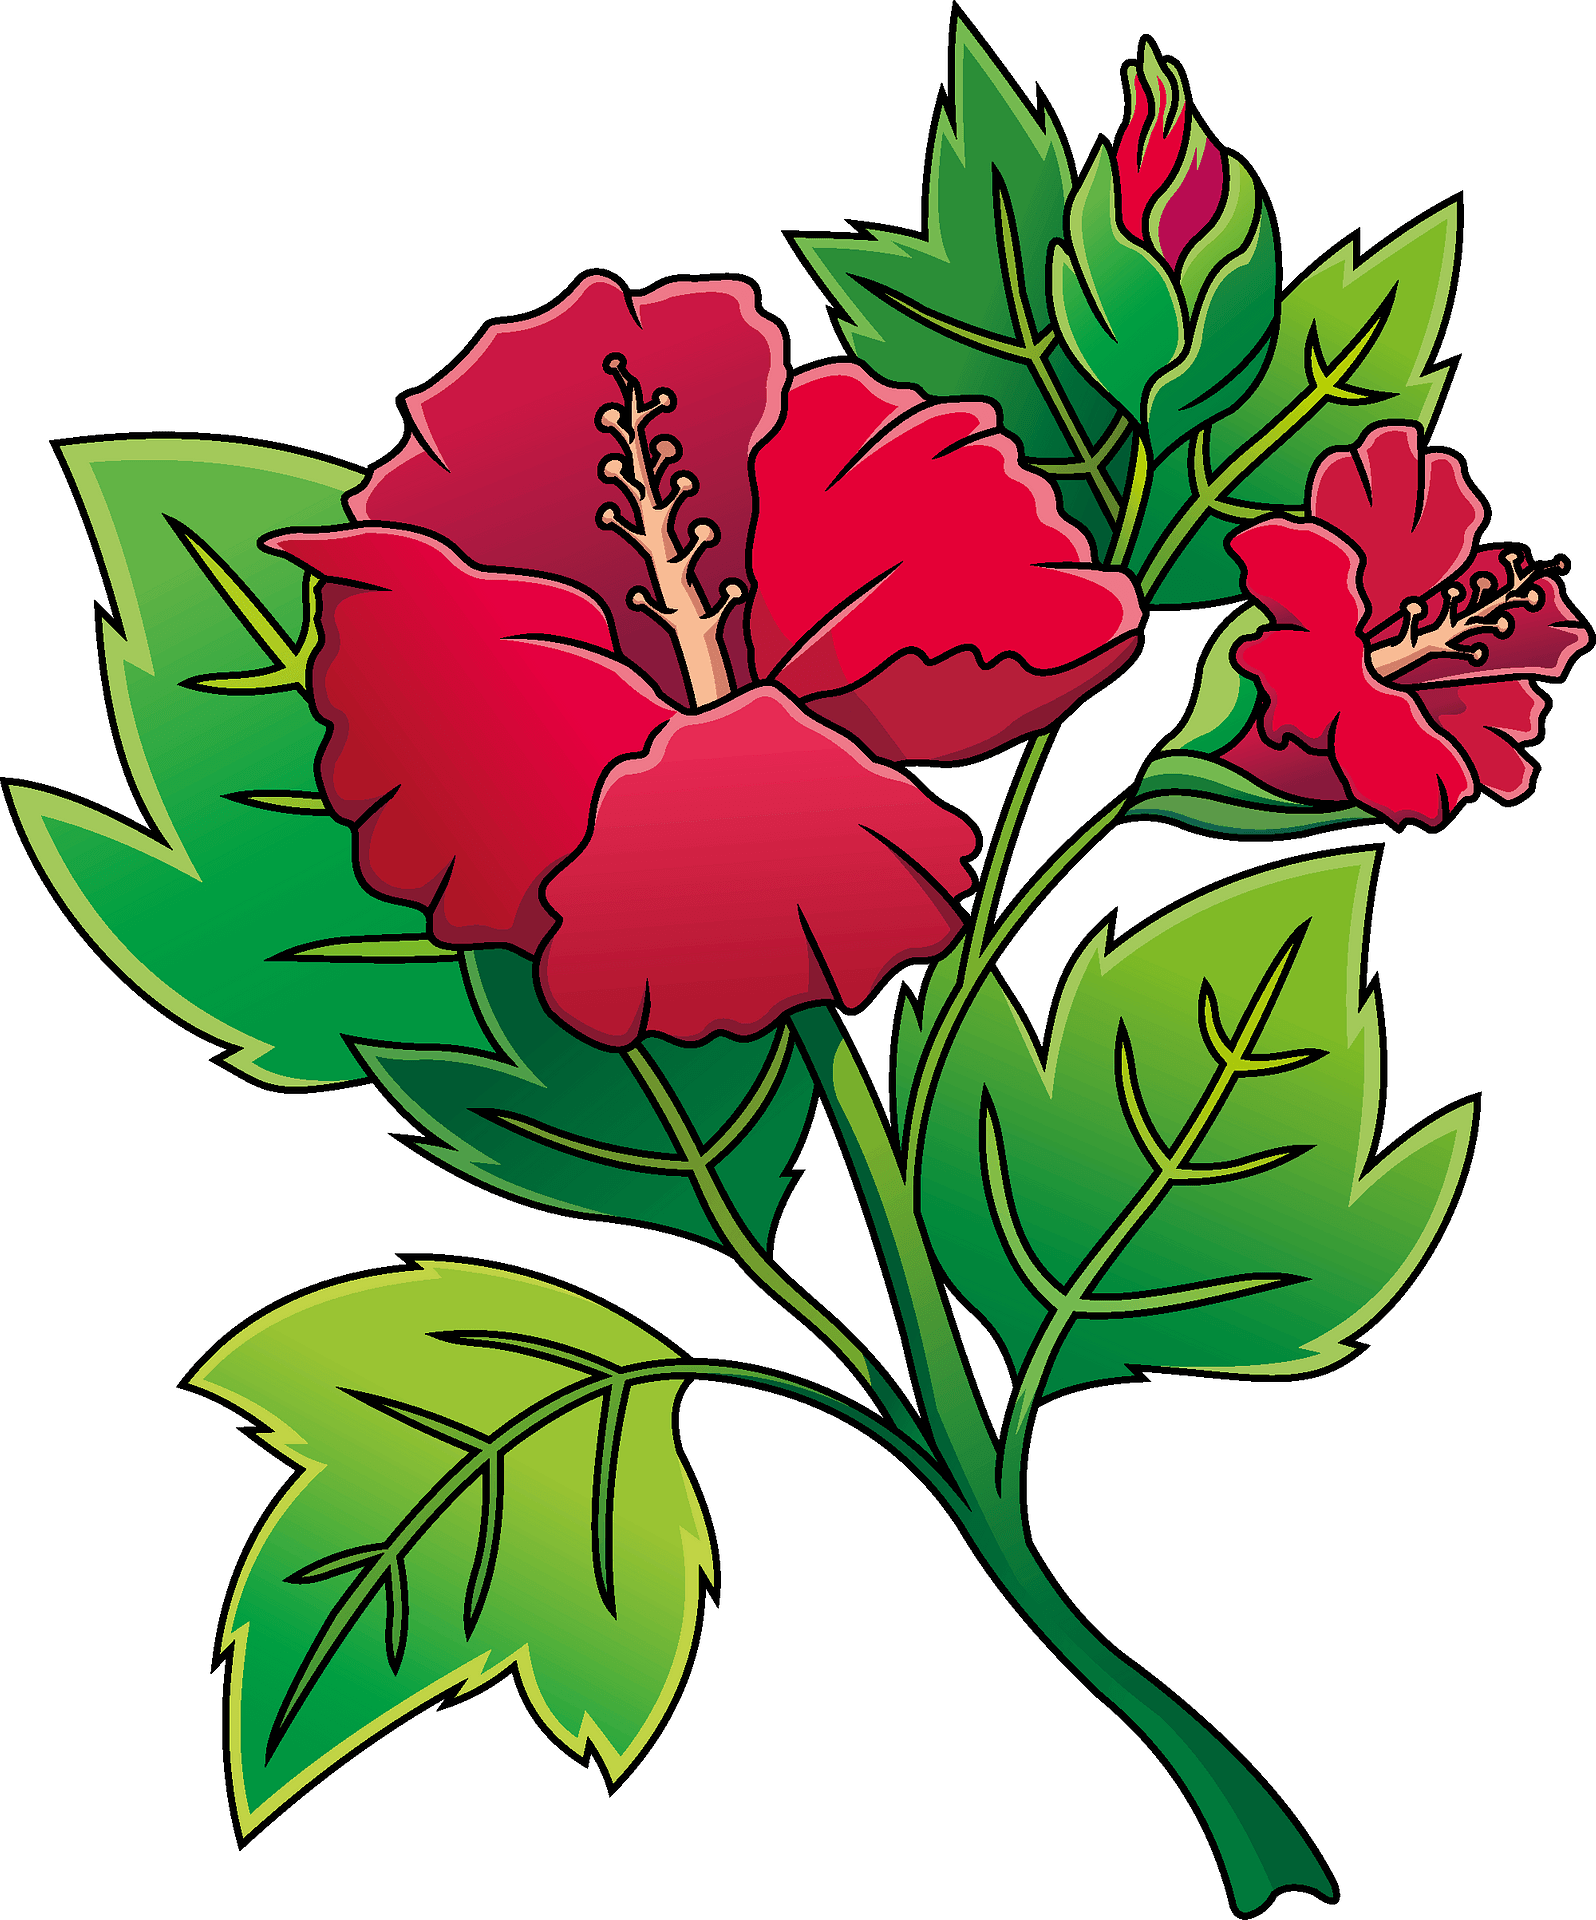 Hibiscus Clipart Clip Art - Clip Art Hibiscus Flower - Png Download  (#48273) - PinClipart